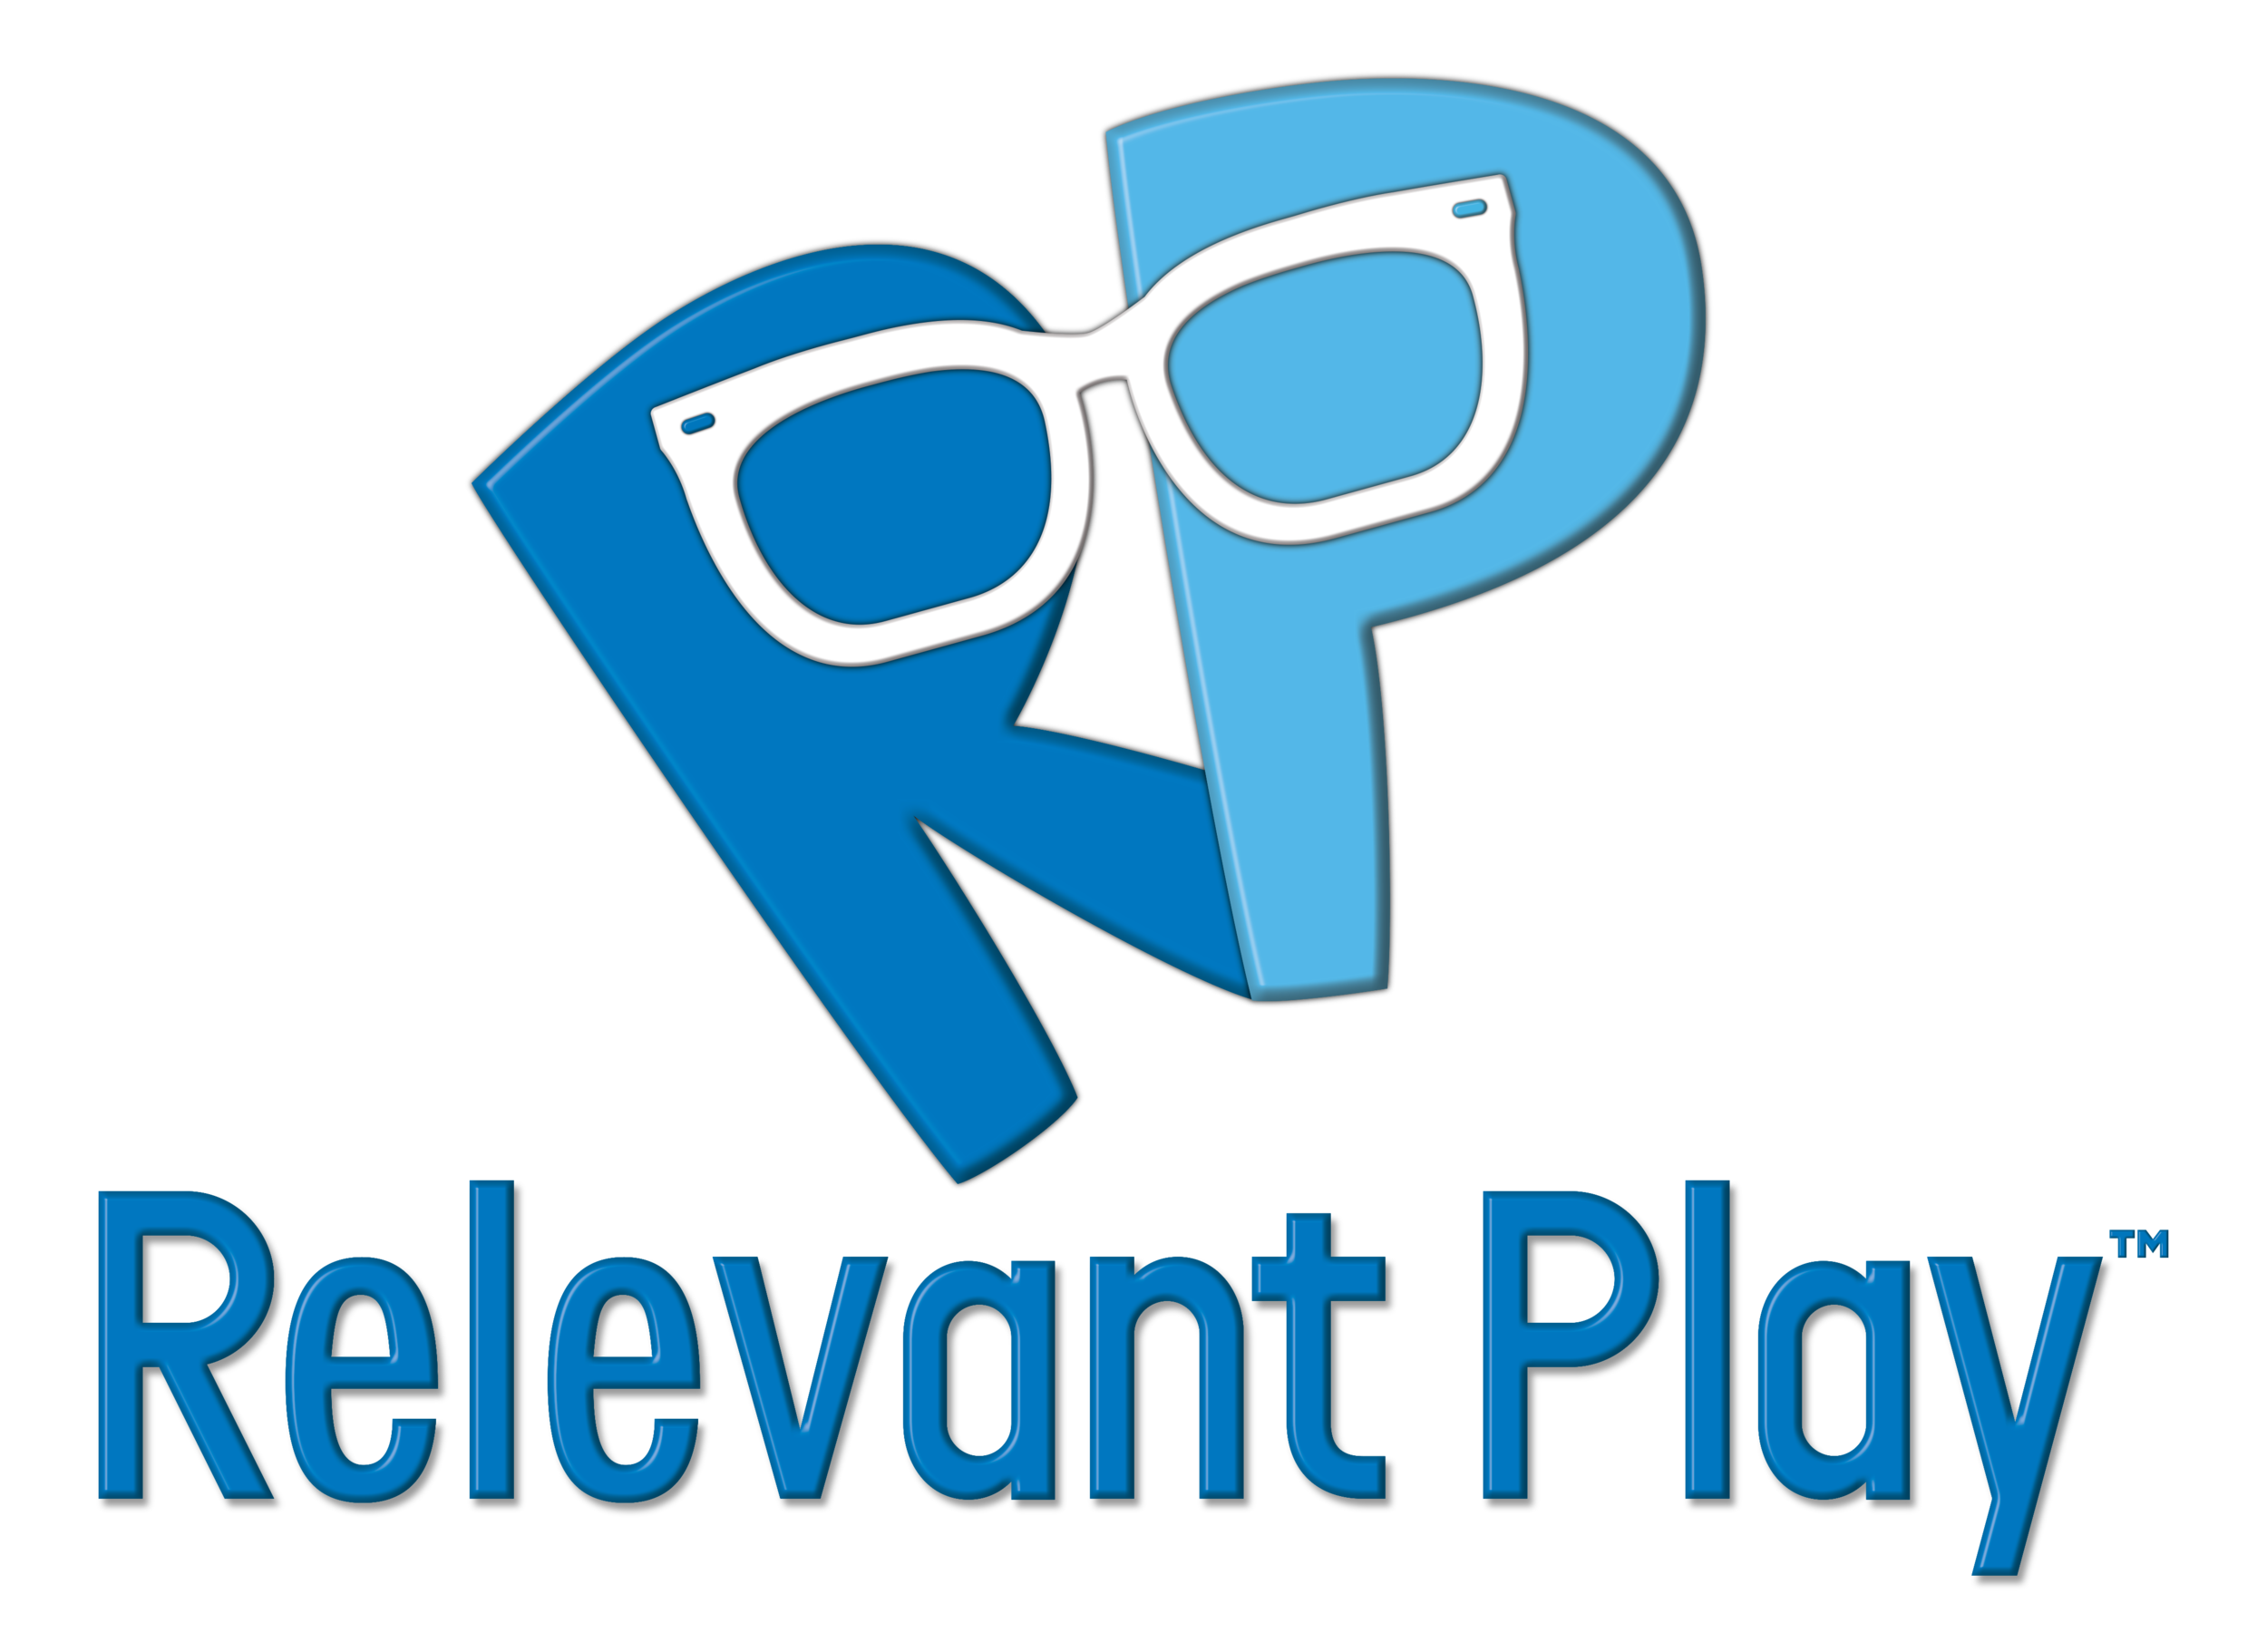 Relevant_Play_Logo__png___02.png